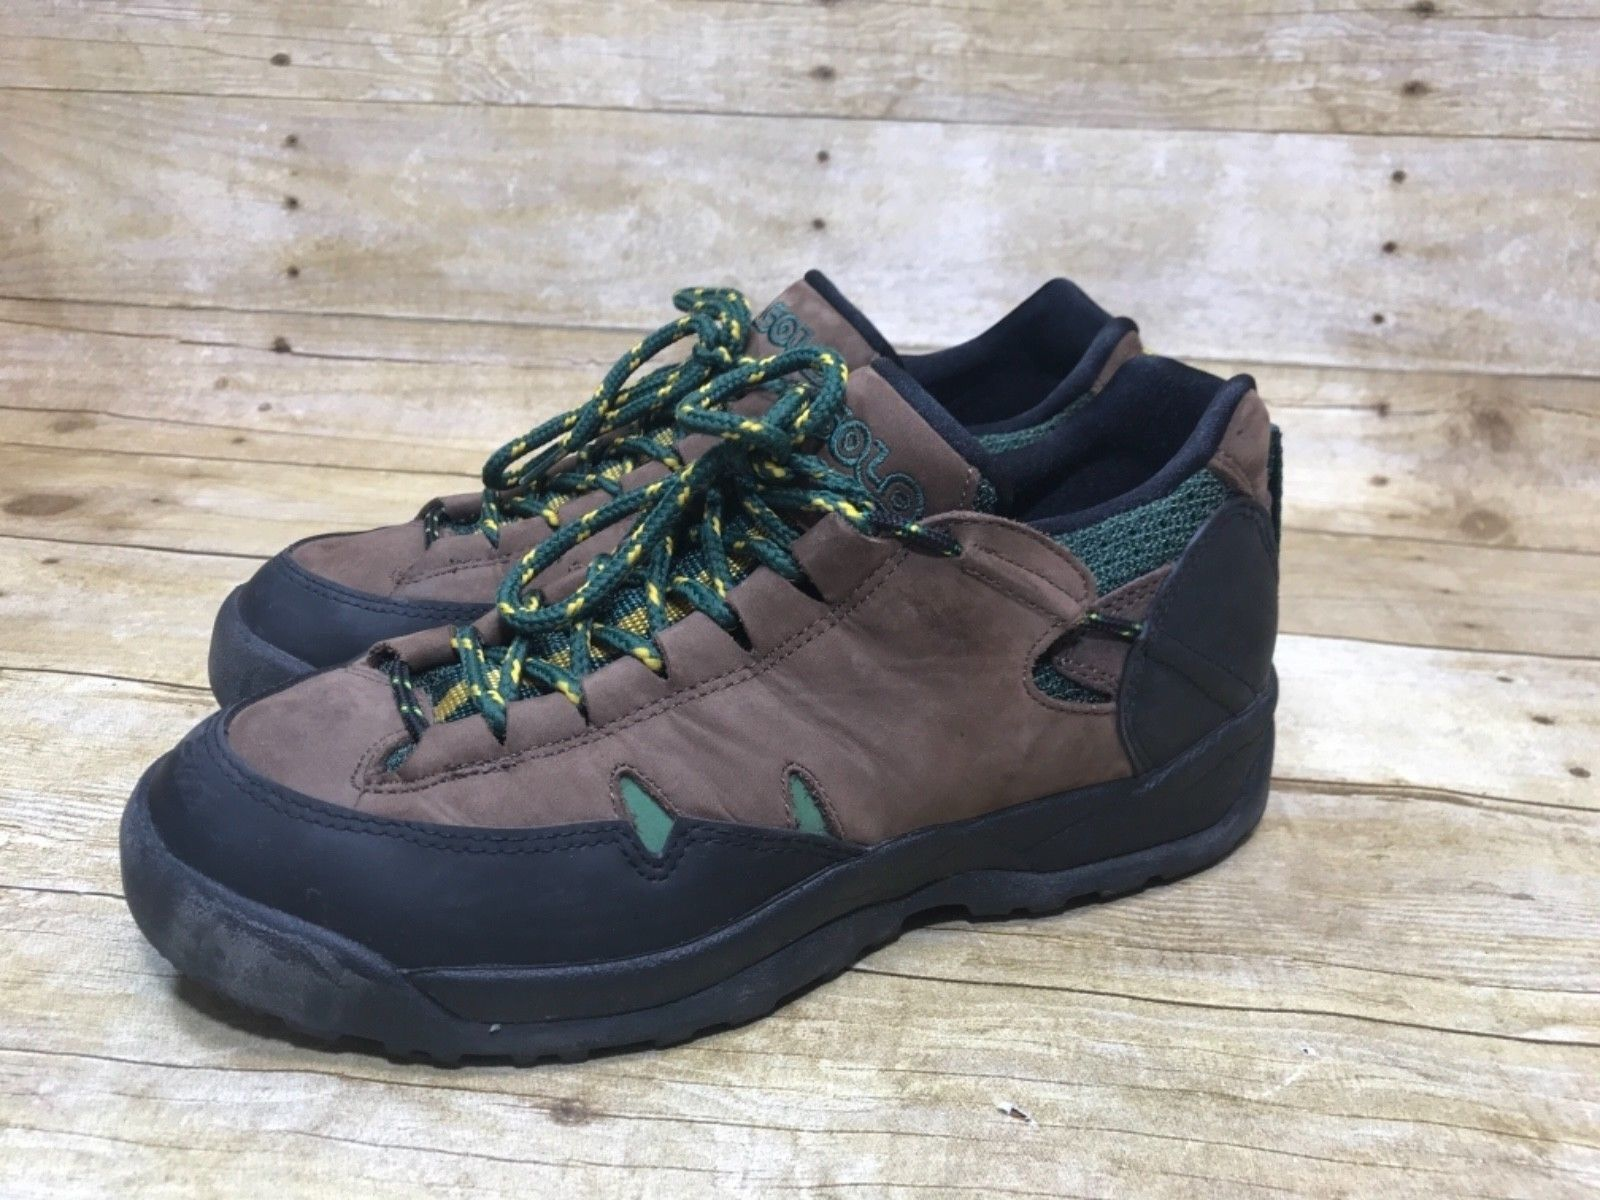 Men Asolo Hiking Trail shoes Size 8.5 Leather Low Top Boot Brown Green